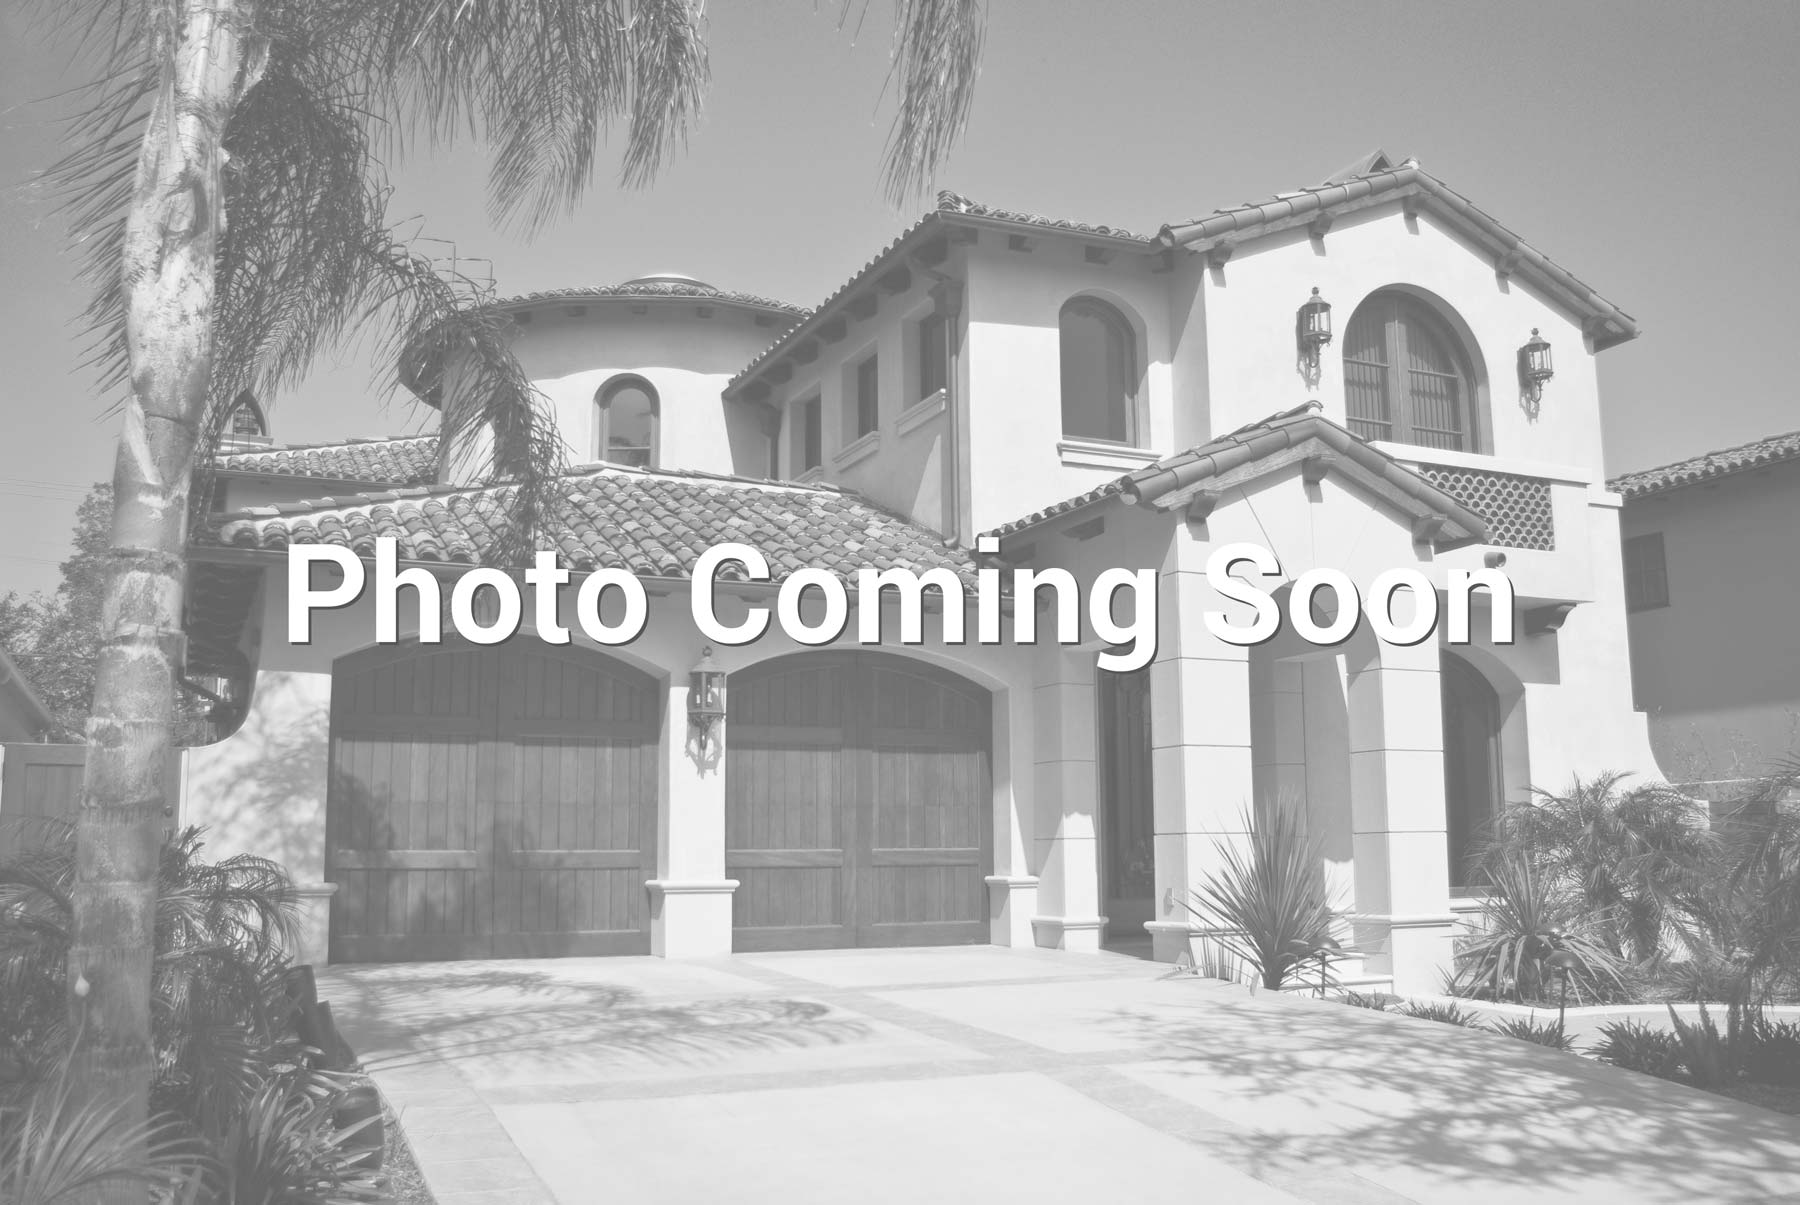 $225,000 - 2Br/2Ba -  for Sale in Scottsdale Somerset Condominium, Scottsdale